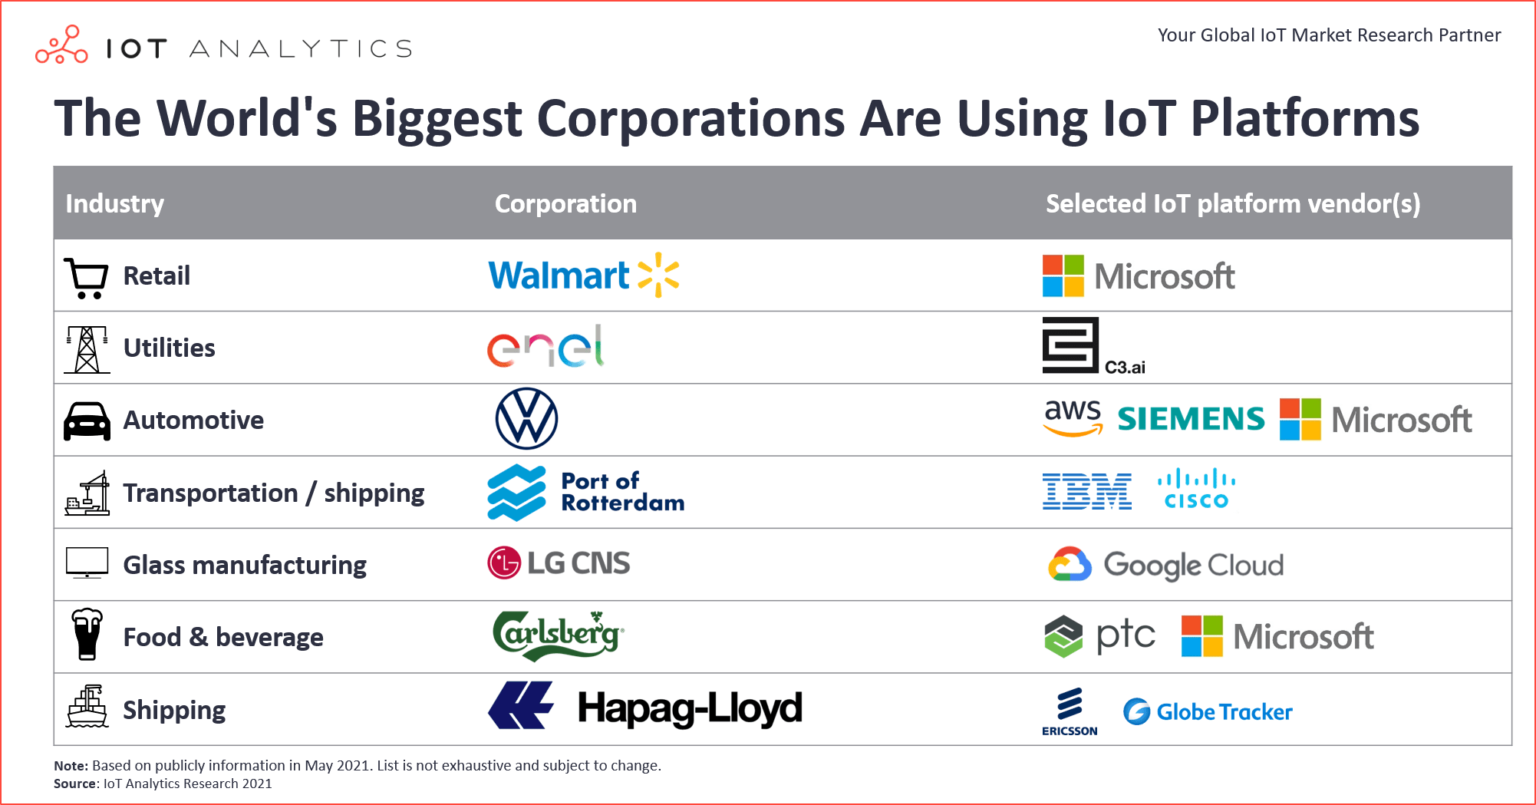 Worlds-Biggest-Corporations-Are-Using-IoT-Platforms-1536x805.png (281 KB)